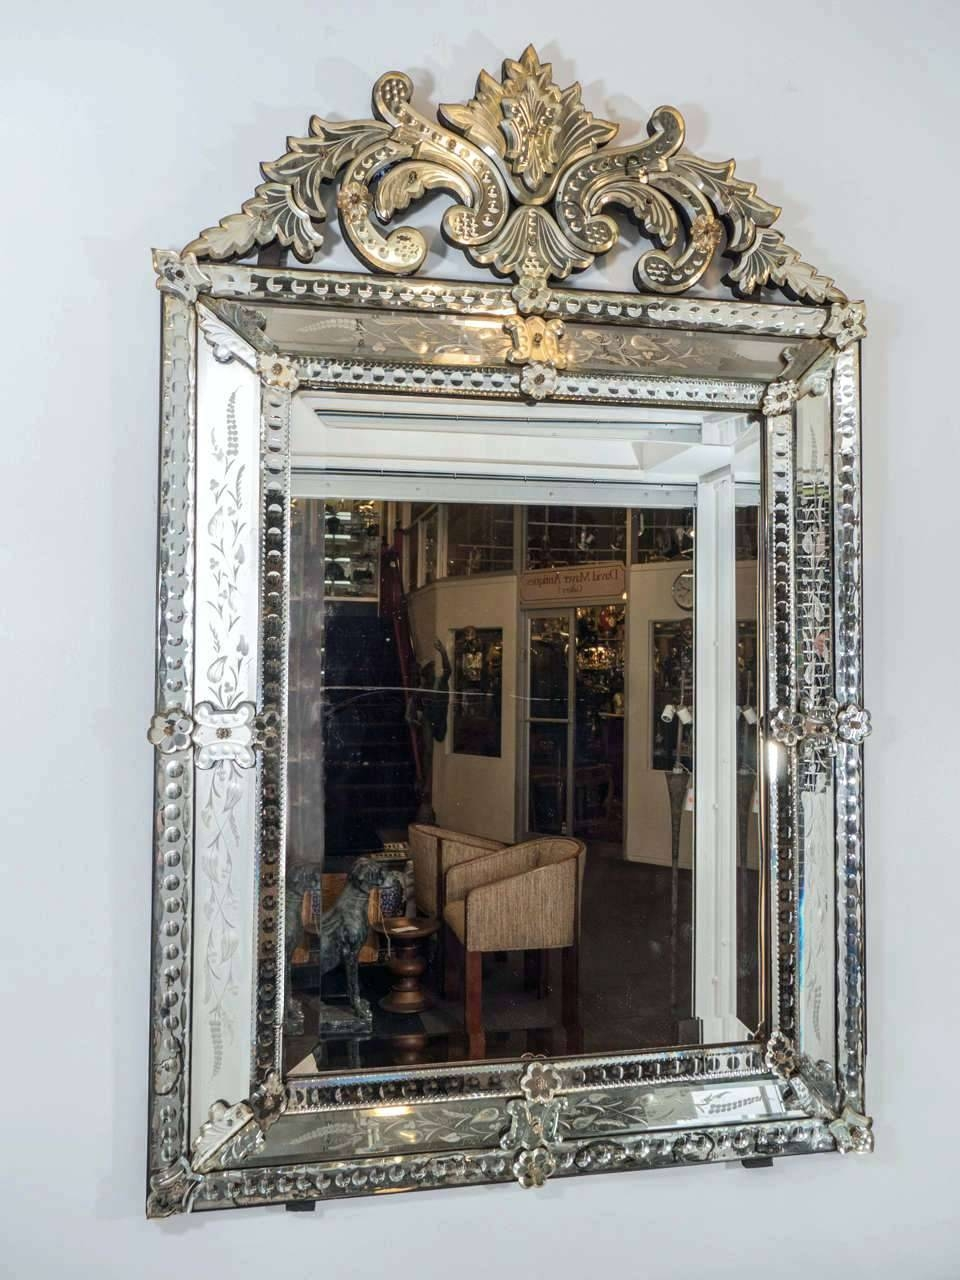 Four Seasons Wall Venetian Mirror Engraved With Murano Glassextra with regard to Long Venetian Mirrors (Image 12 of 25)